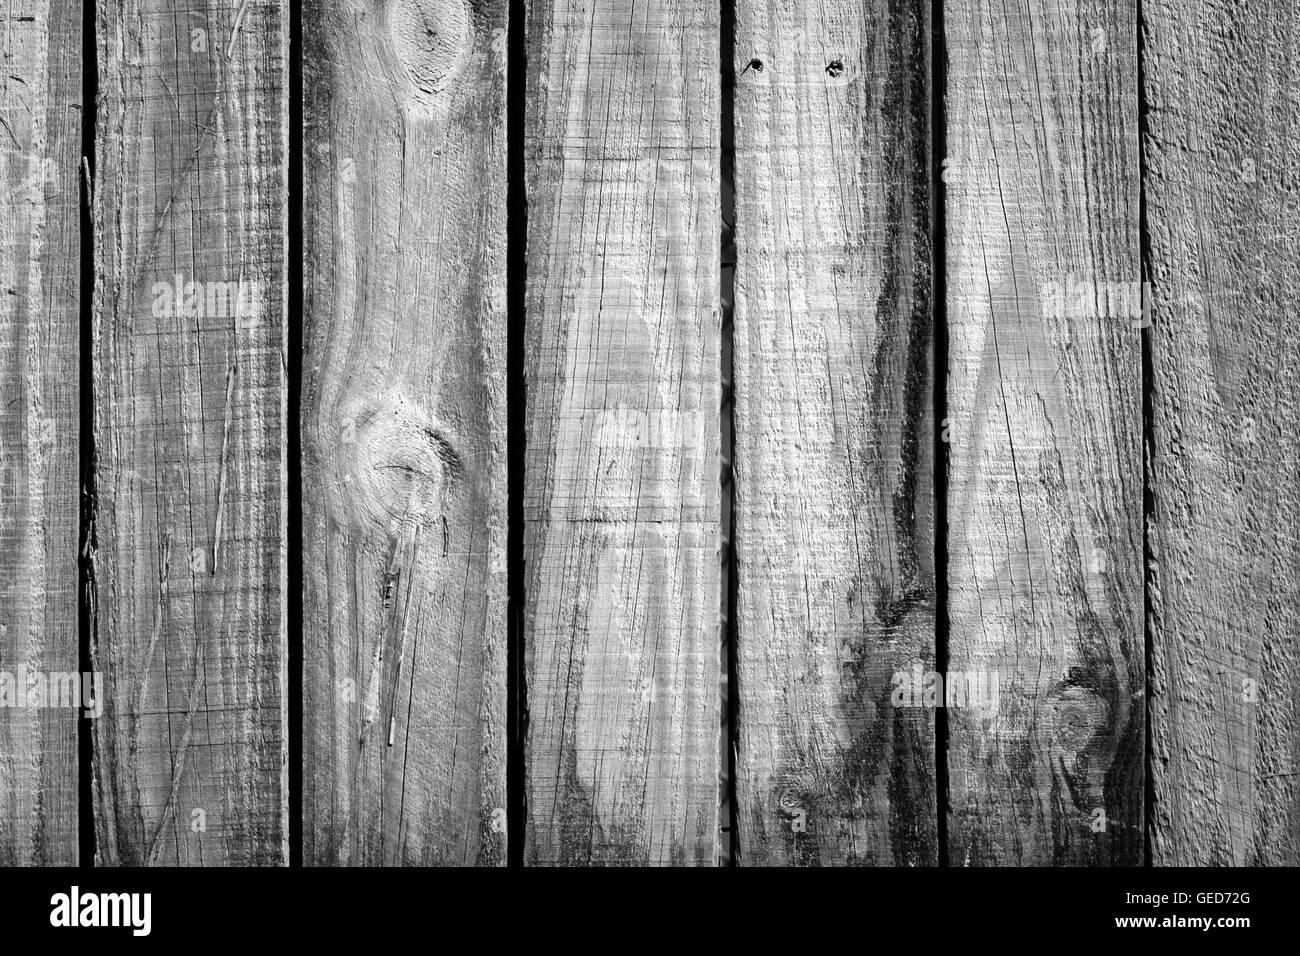 old rough timber fence planks with a old weathered look - Stock Image